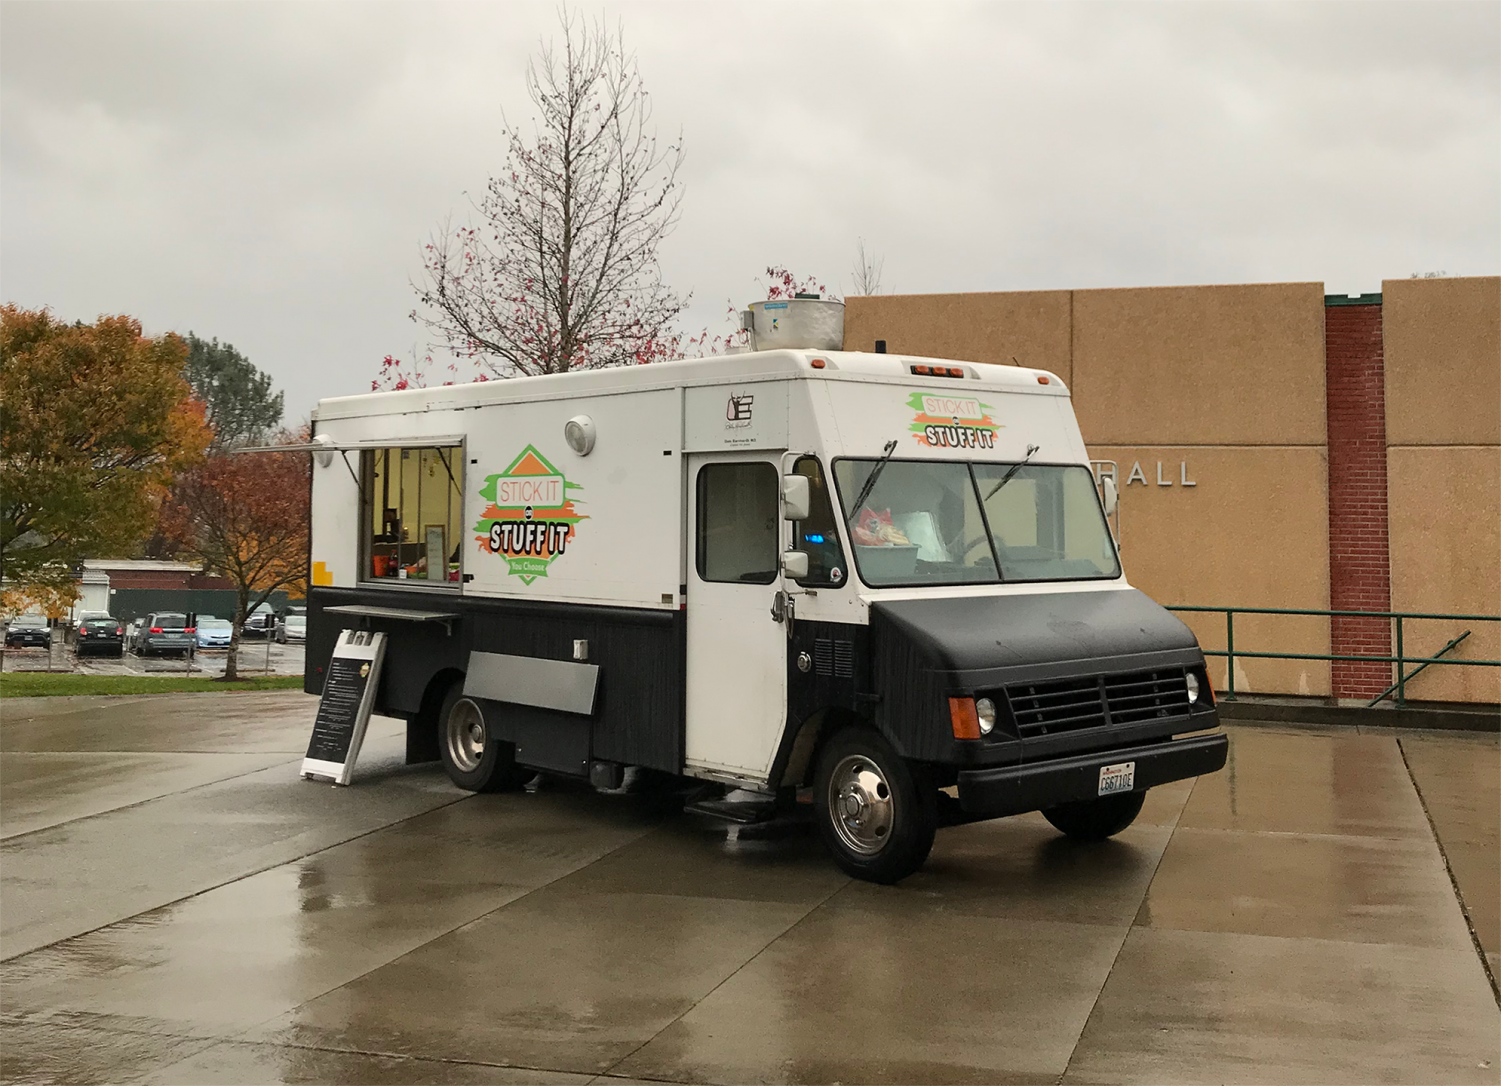 The Polish food truck